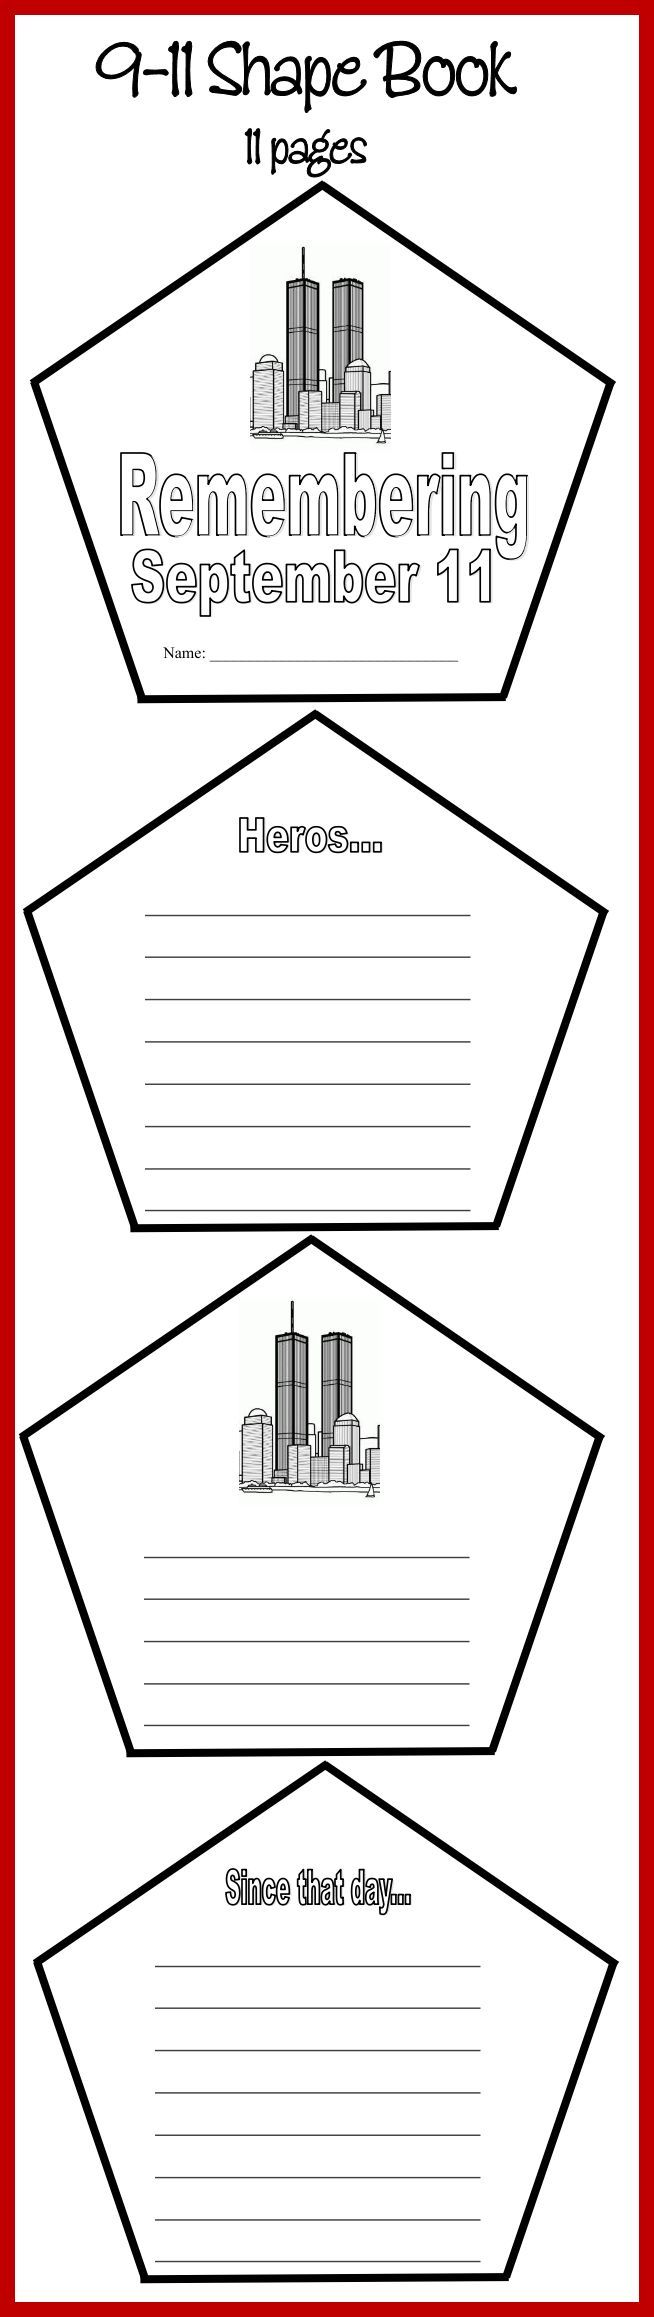 NEW DOWNLOAD: 9-11 Shapebook 11 pages Download Club members can download @ http://www.christianhomeschoolhub.com/pt/September-11th-Teaching-Materials/wiki.htm